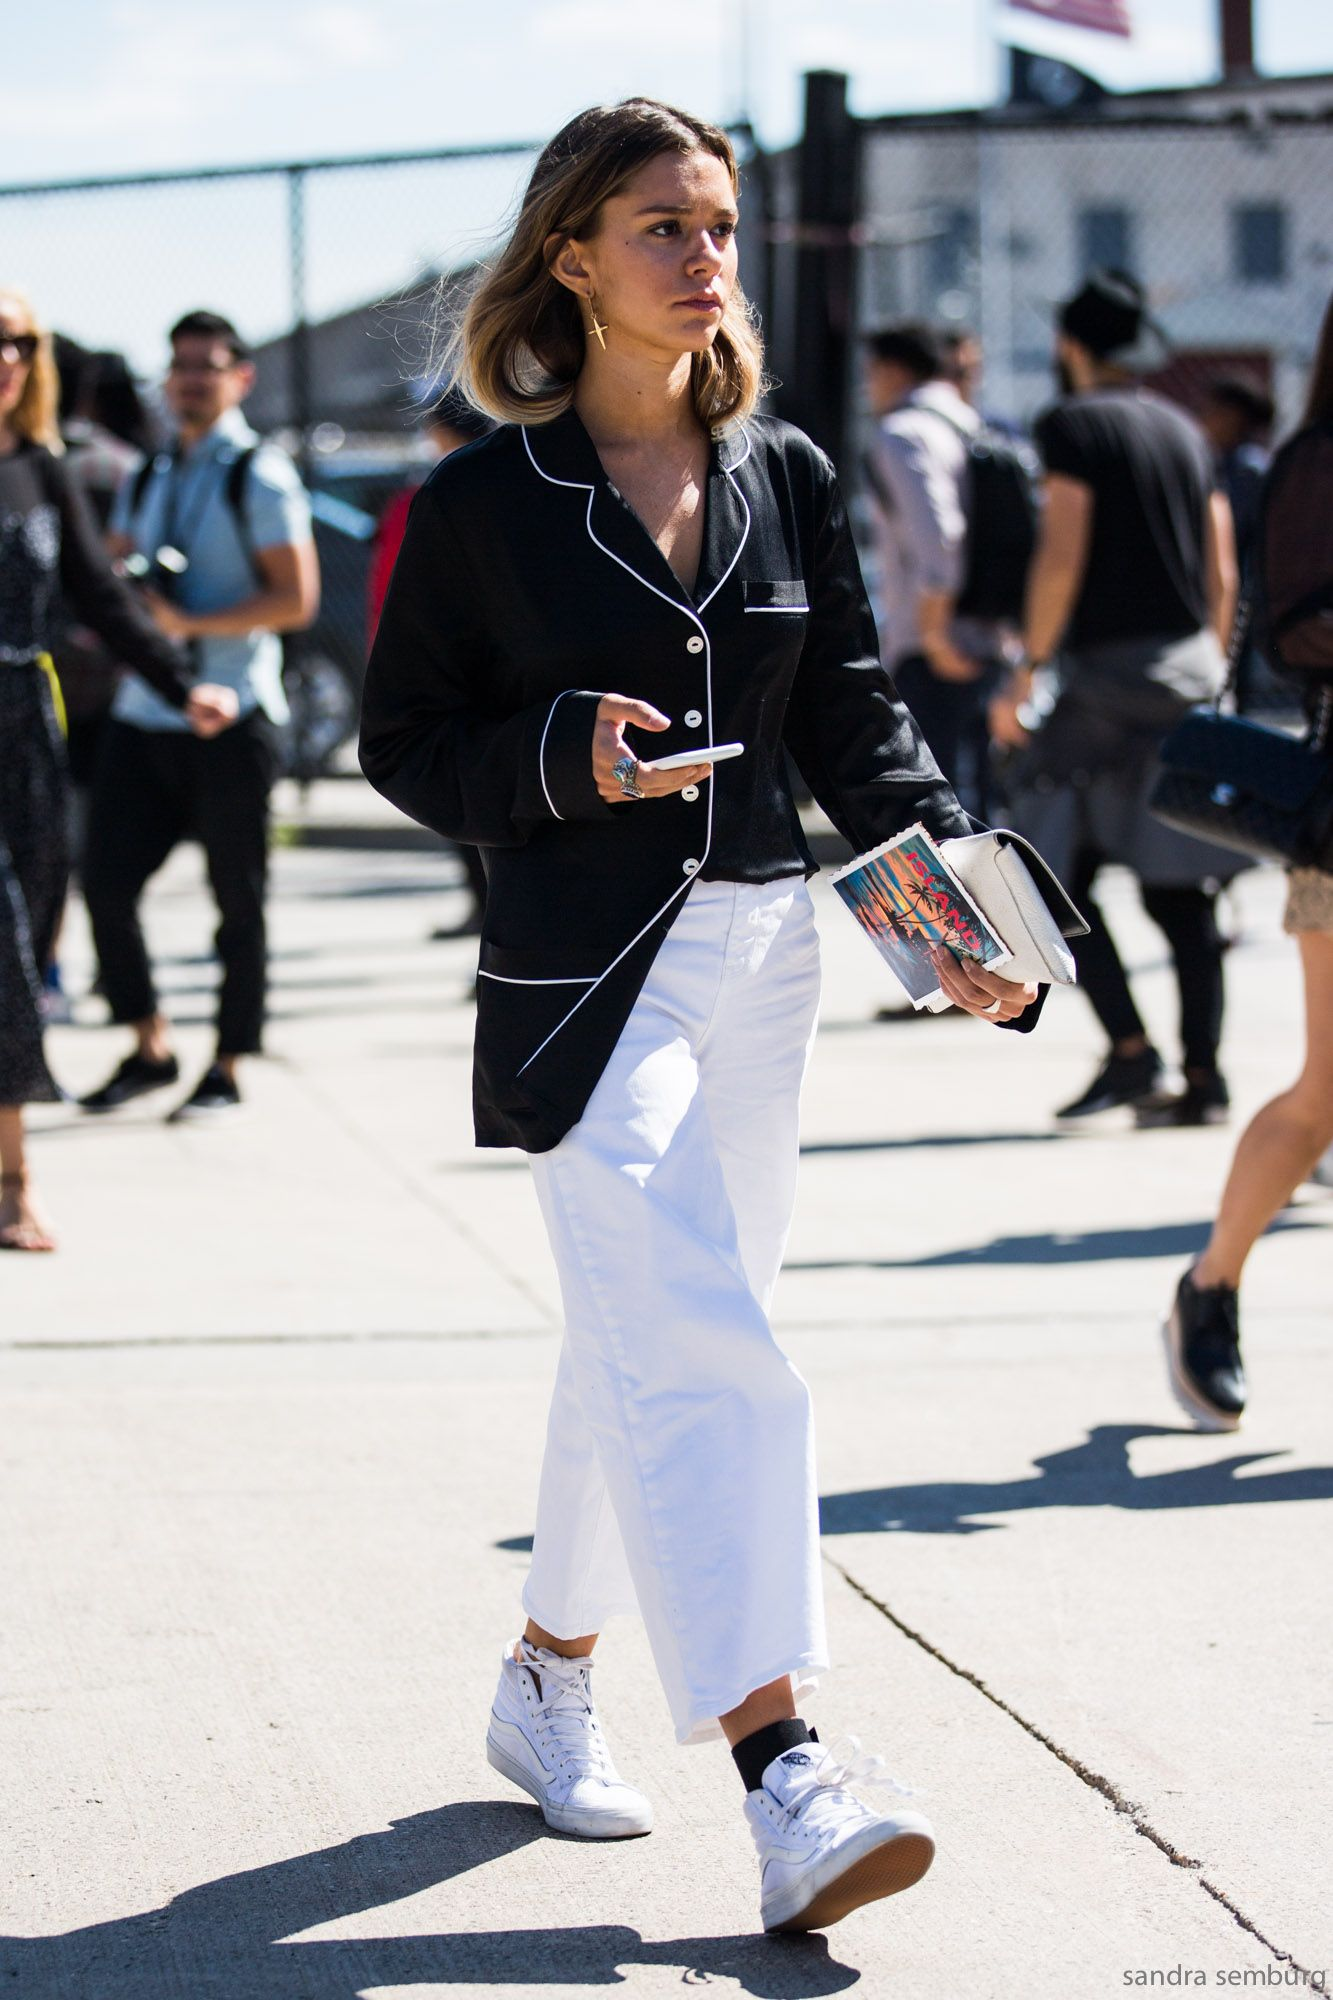 1566fffb91b0d8 How To Wear Pyjamas In Public - Cool Monochrome PJ Look Street Style ...